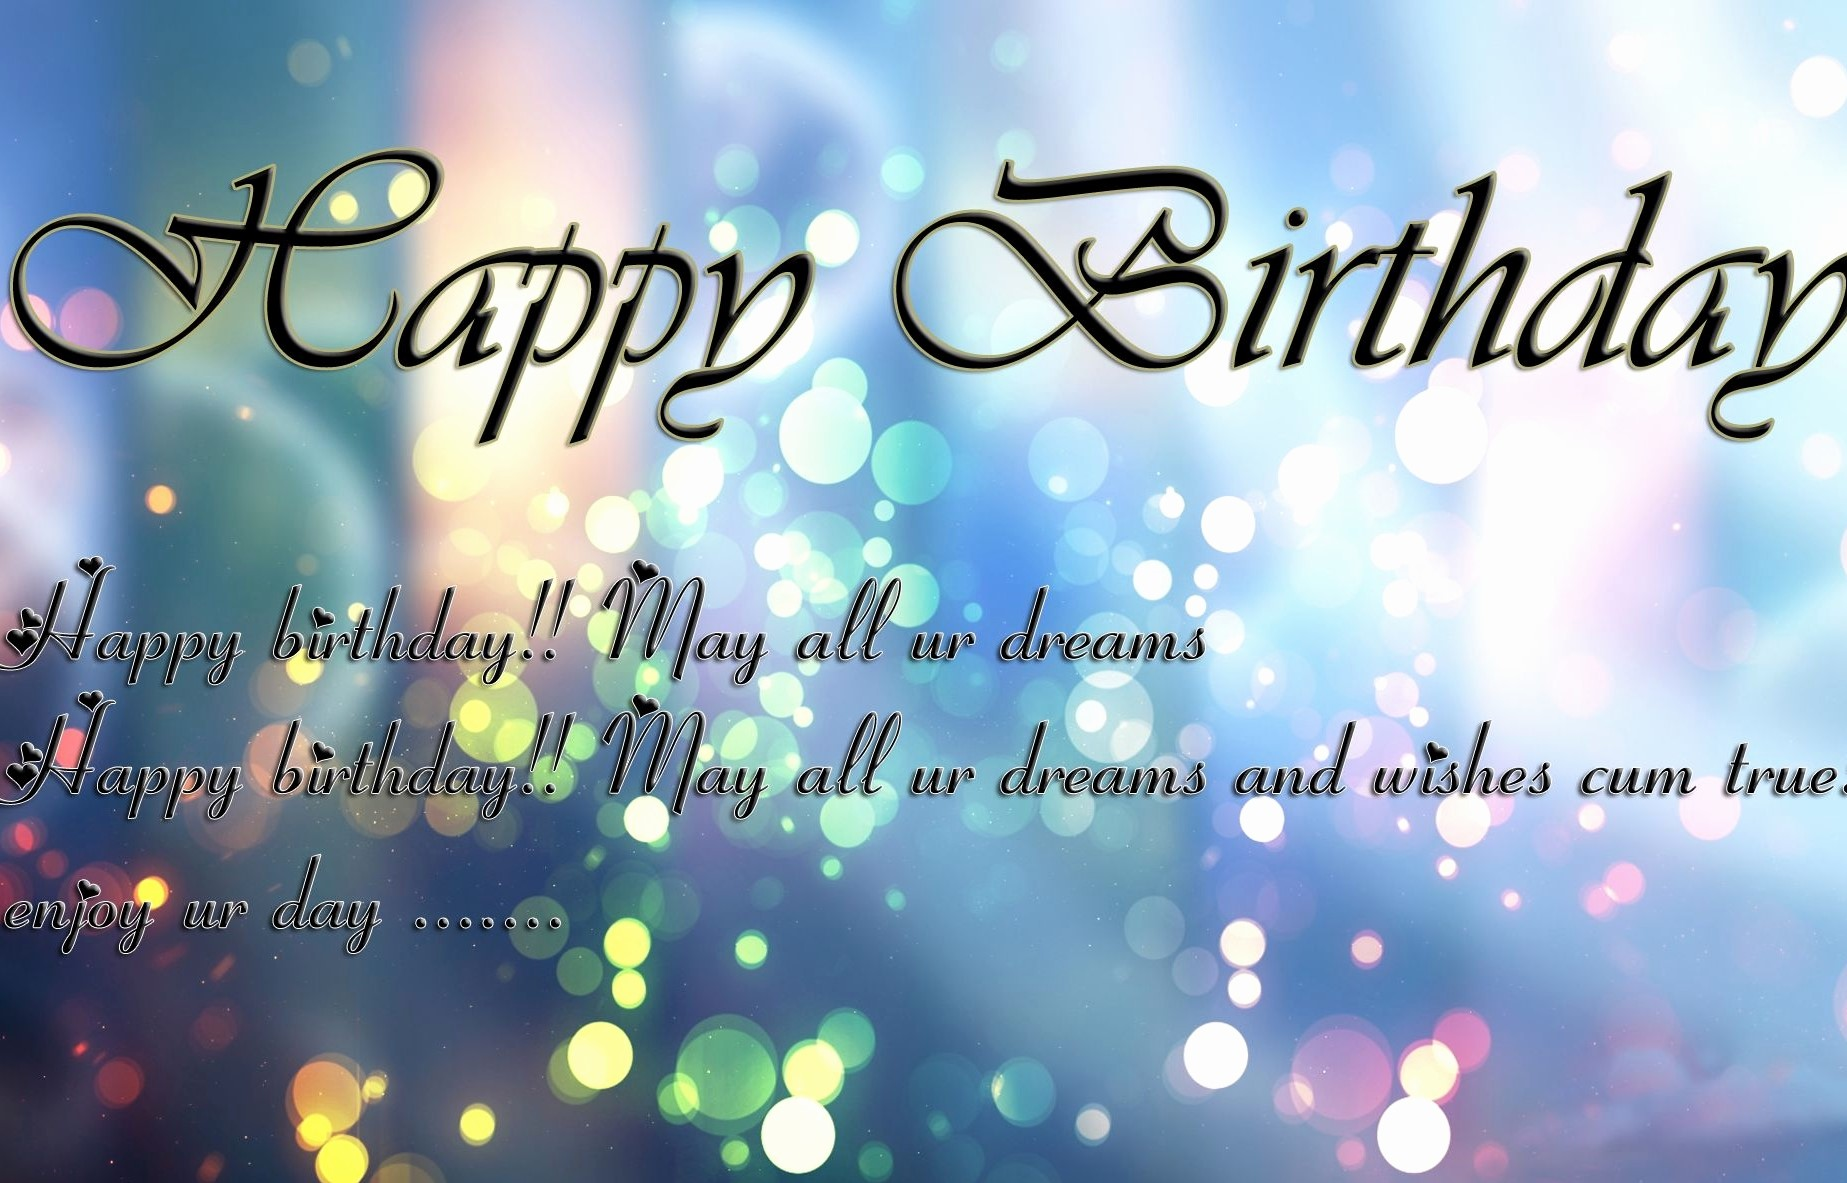 happy birthday quotes images hd ; Birthday-Quotes-and-Wishes-Hd-Wallpapers-13